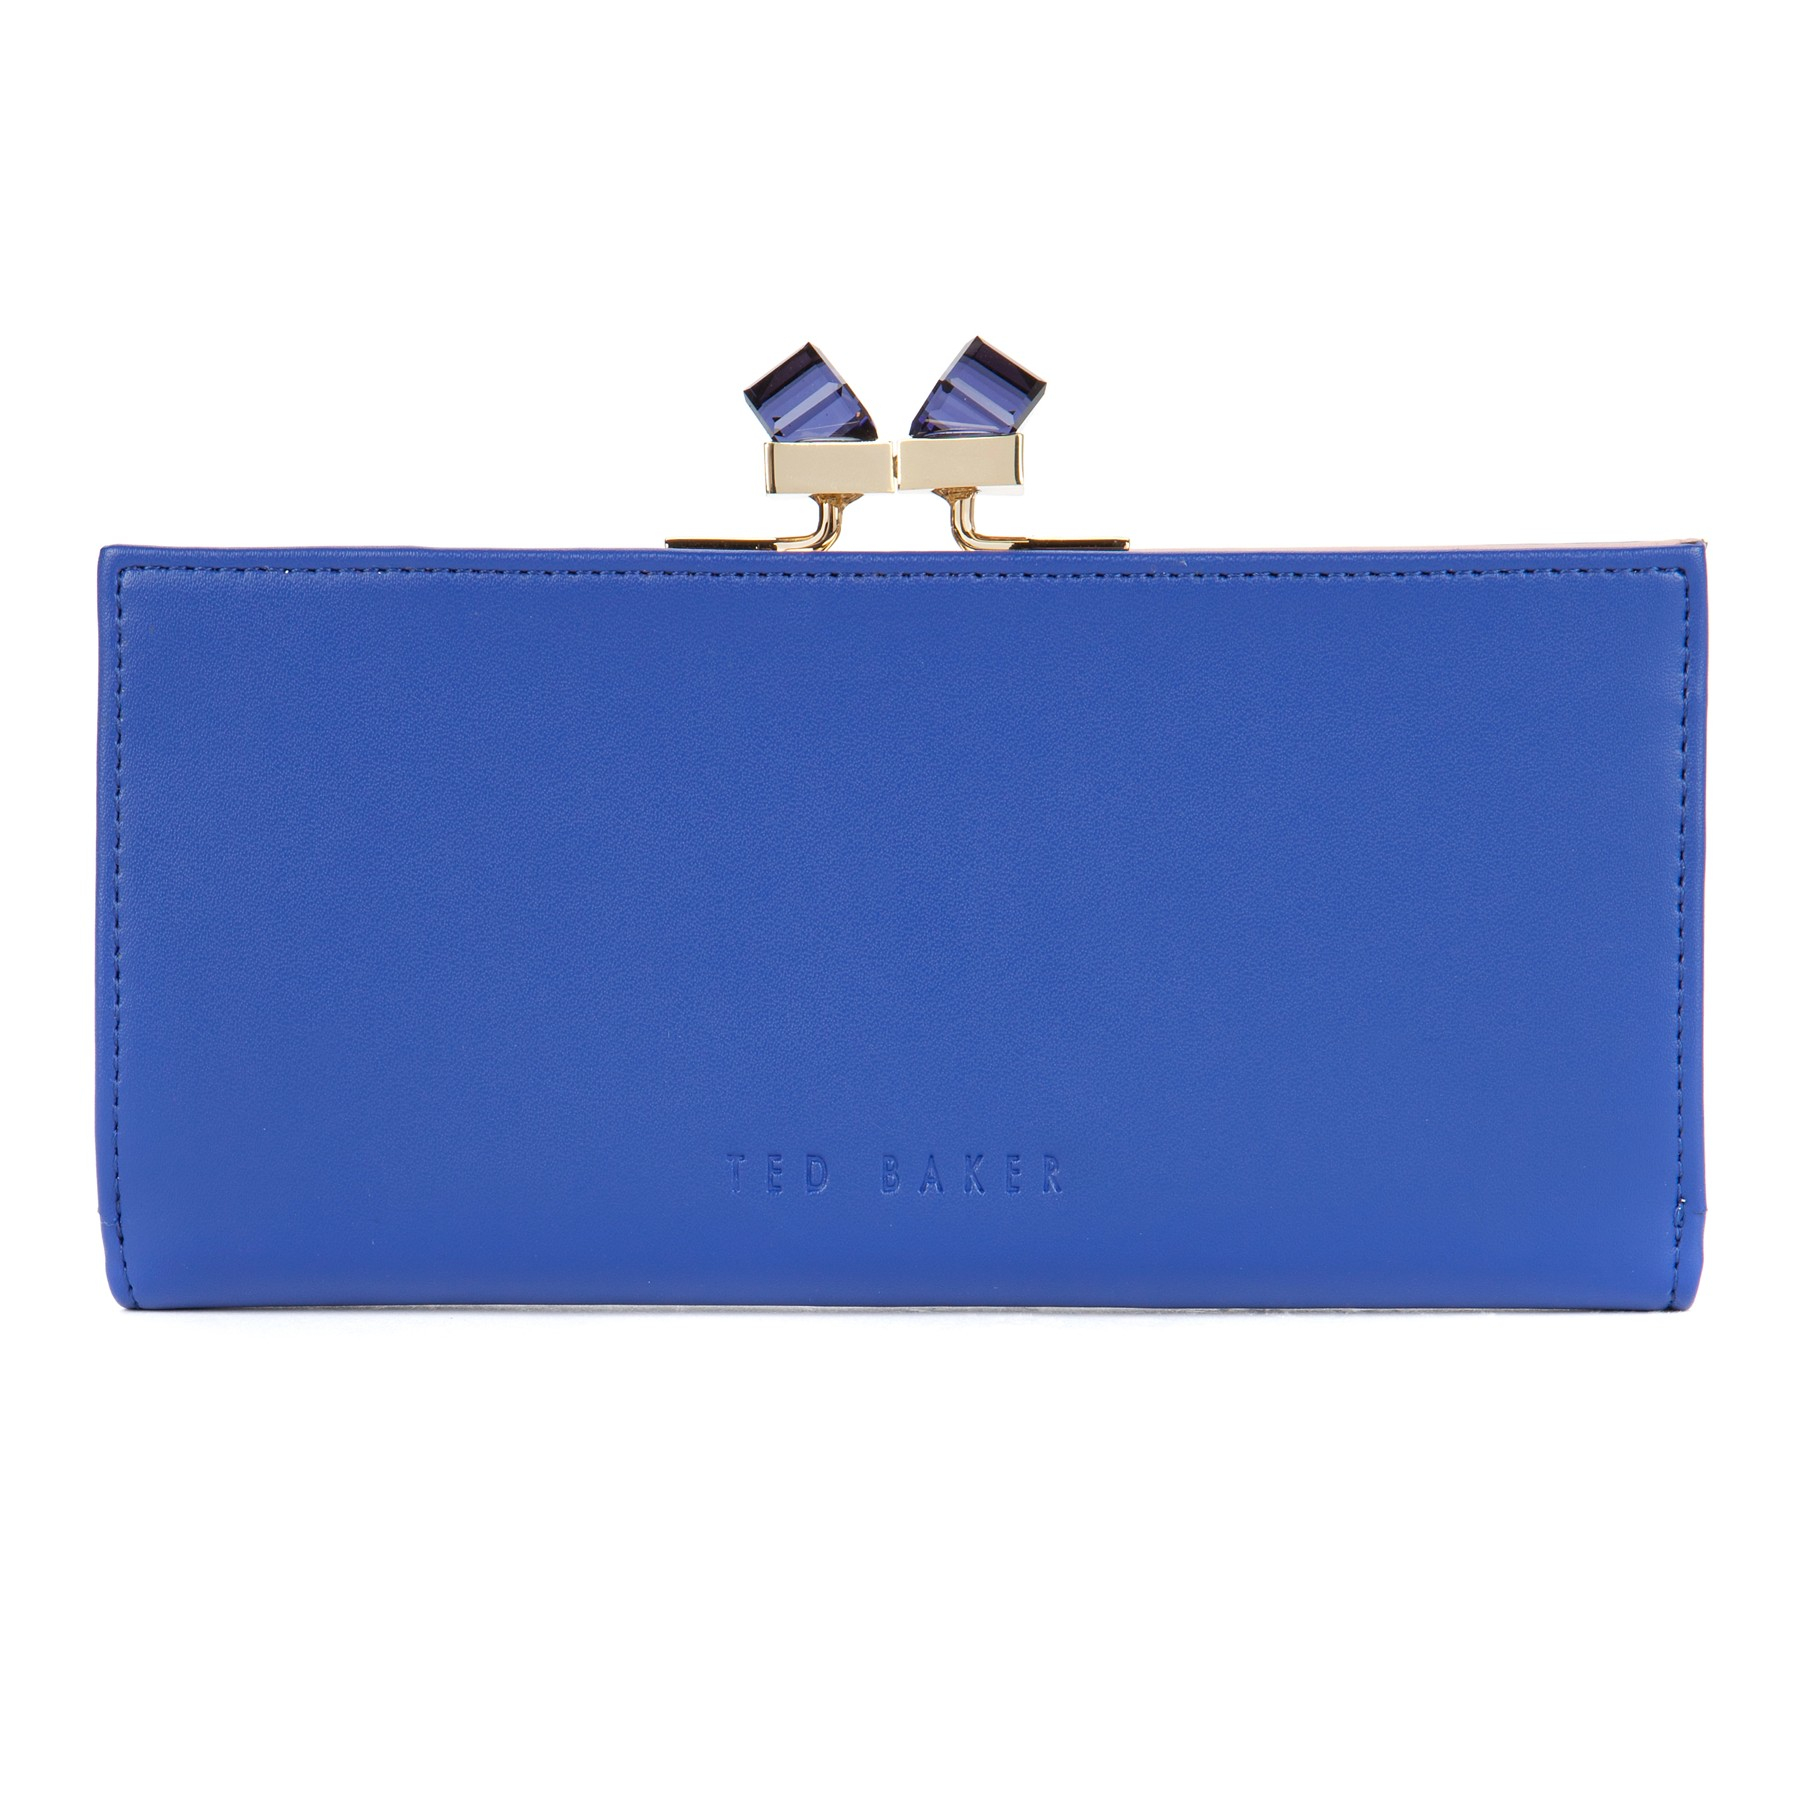 6e67b19b54b15 Ted Baker Wenny Square Crystal Popper Matinee Leather Purse in Blue ...